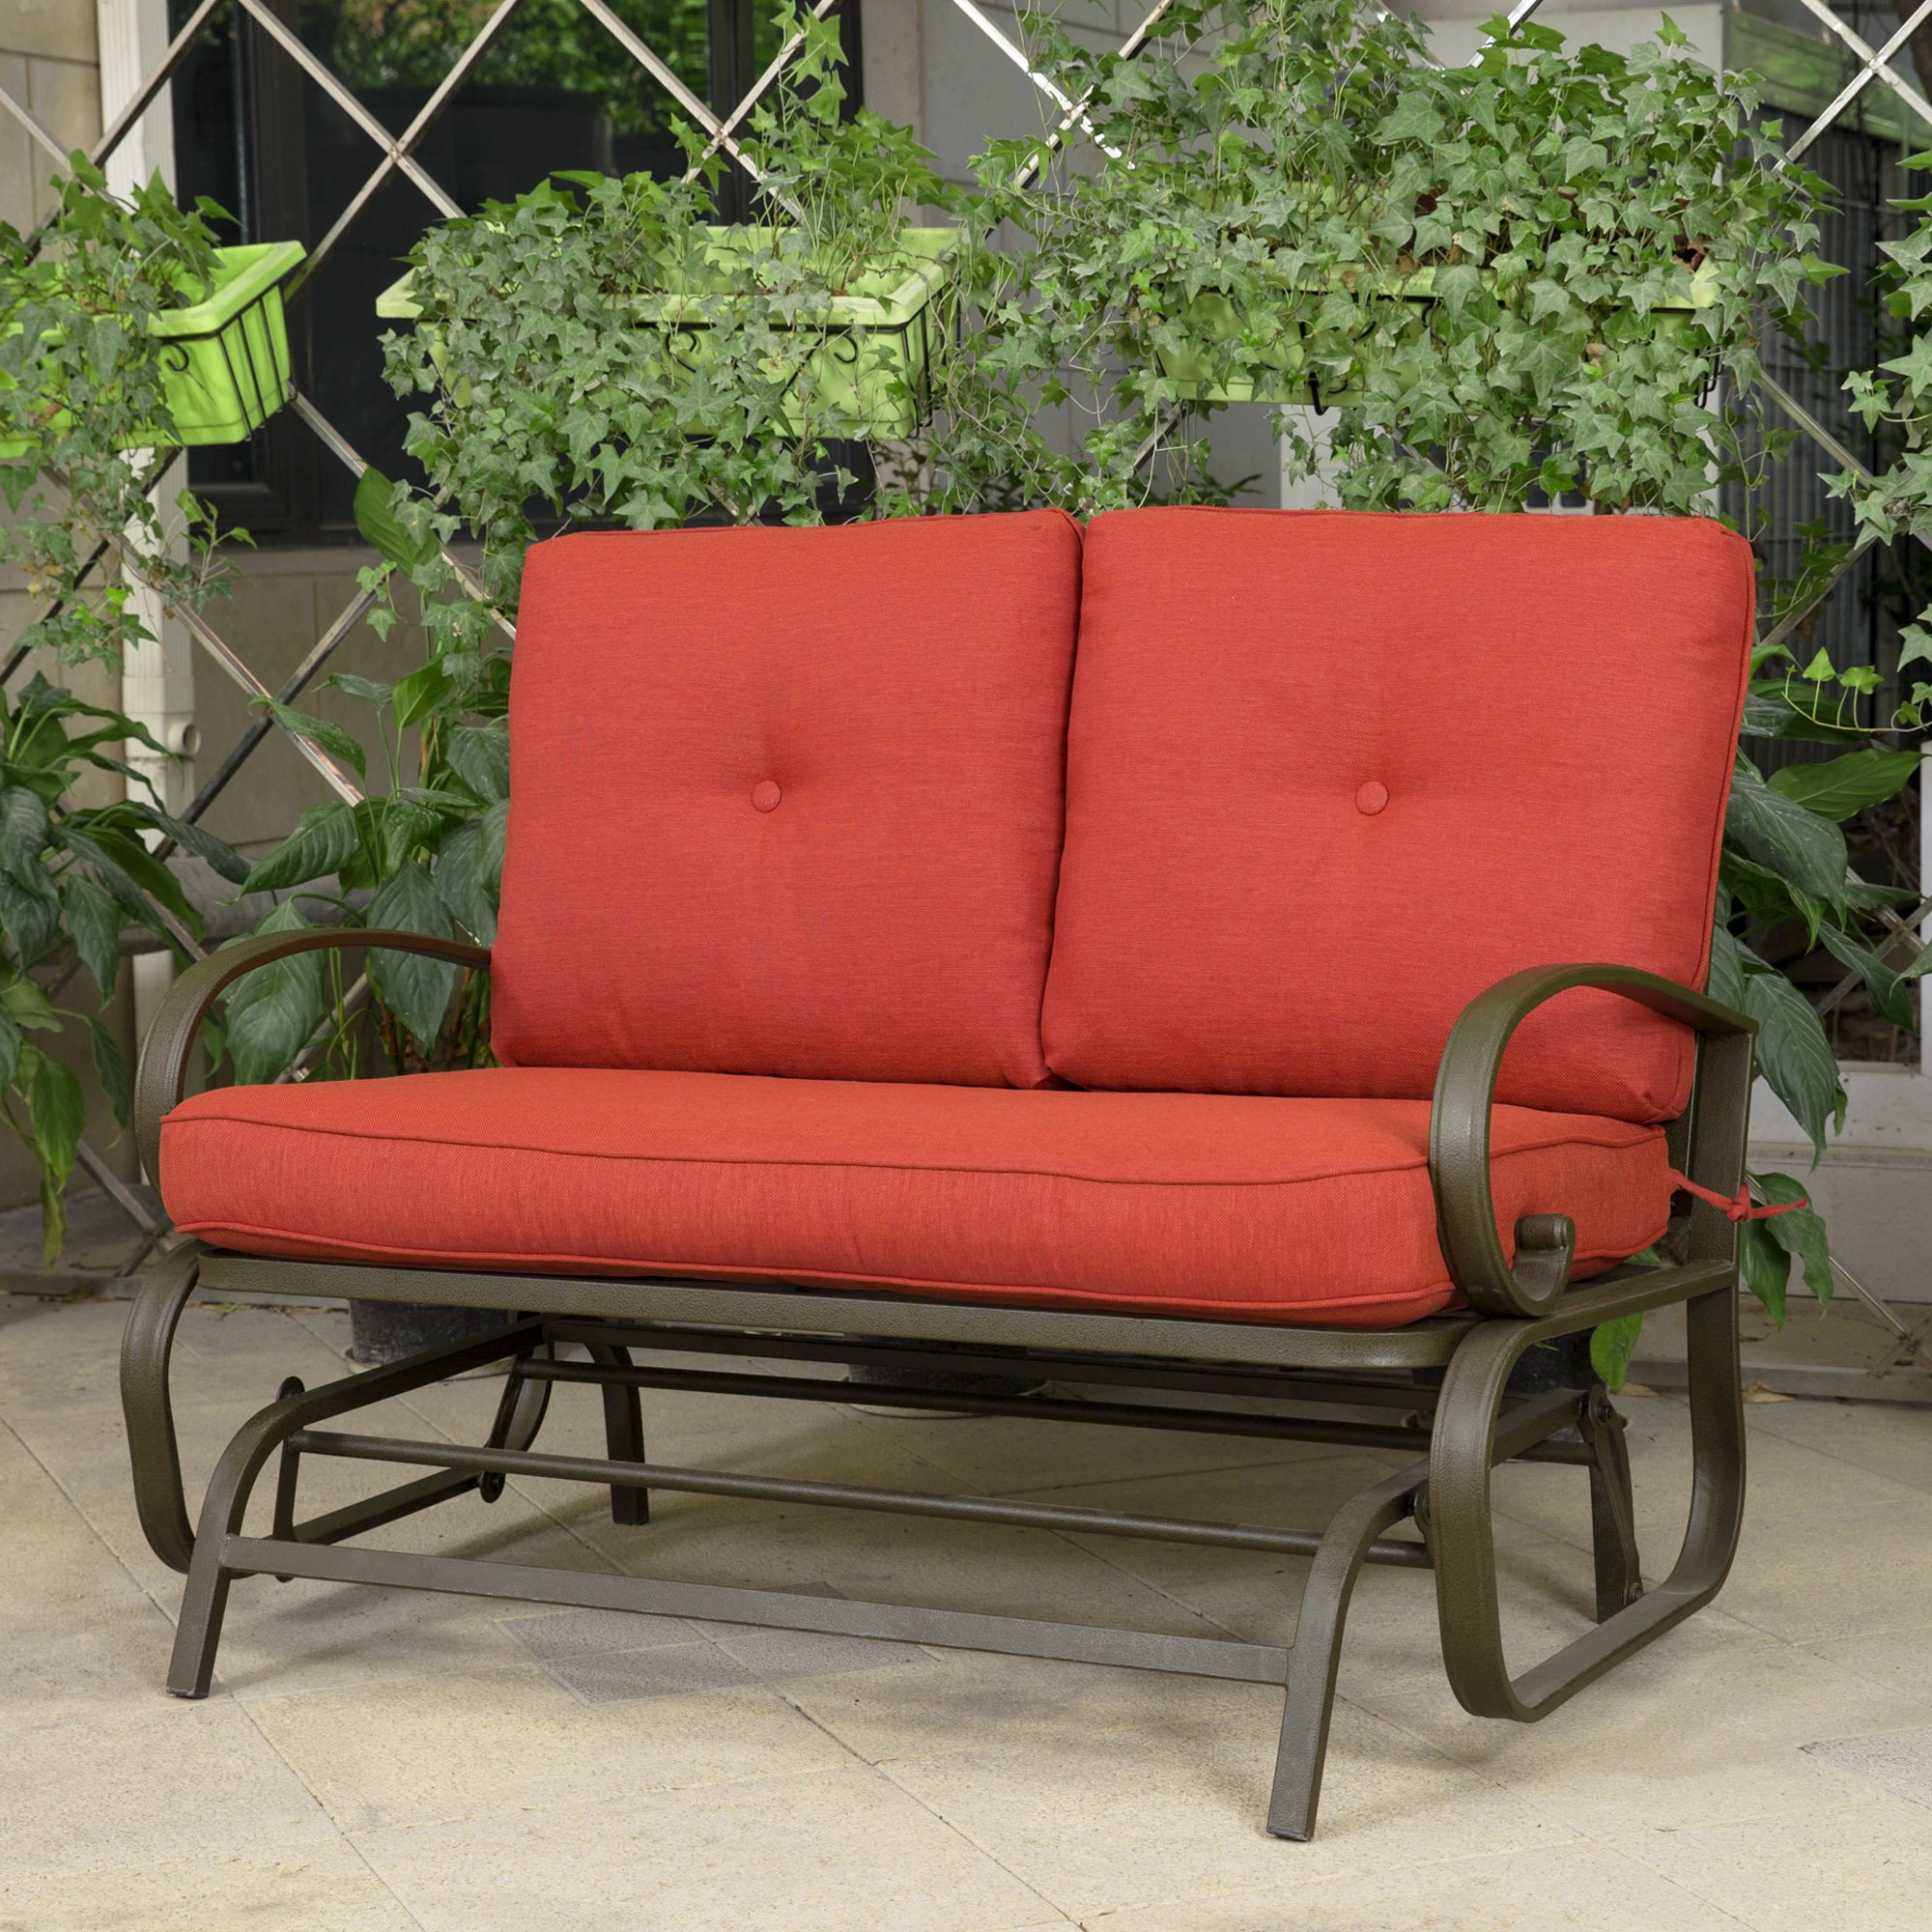 Widely Used Cheap 2 Person Glider Swing, Find 2 Person Glider Swing With Regard To Double Glider Benches With Cushion (View 24 of 30)